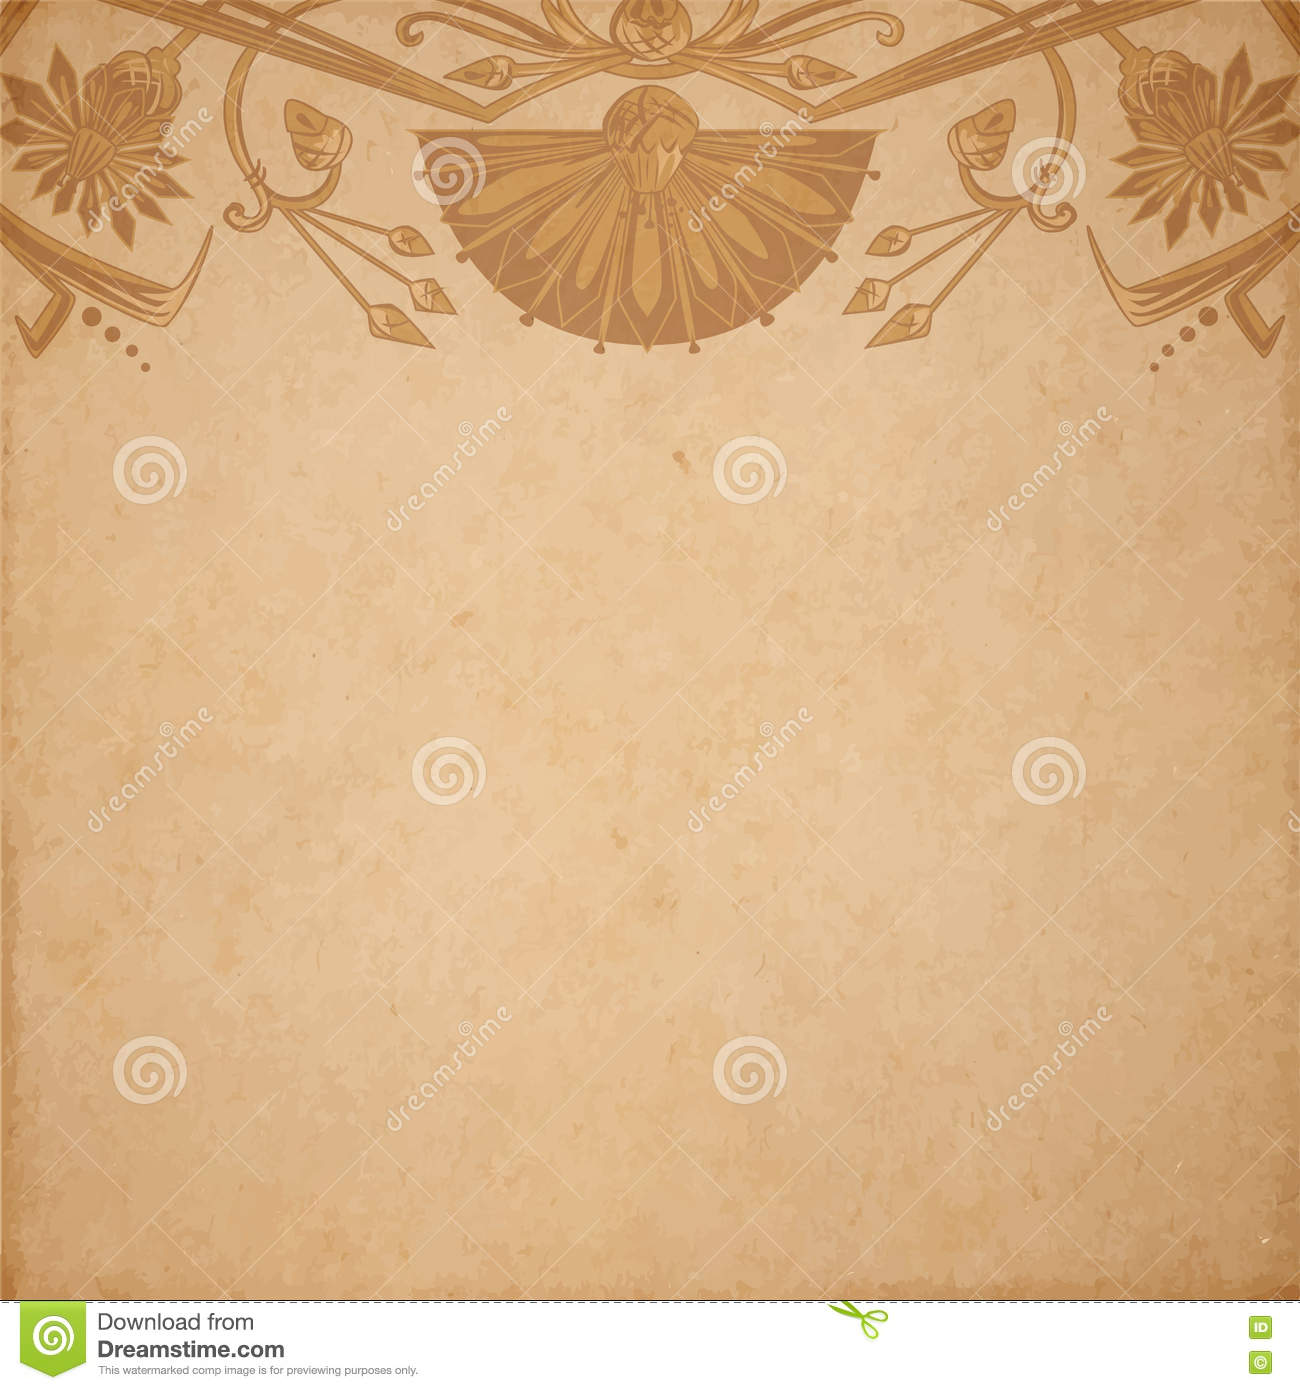 Download Egyptian Parchment Background Stock Vector